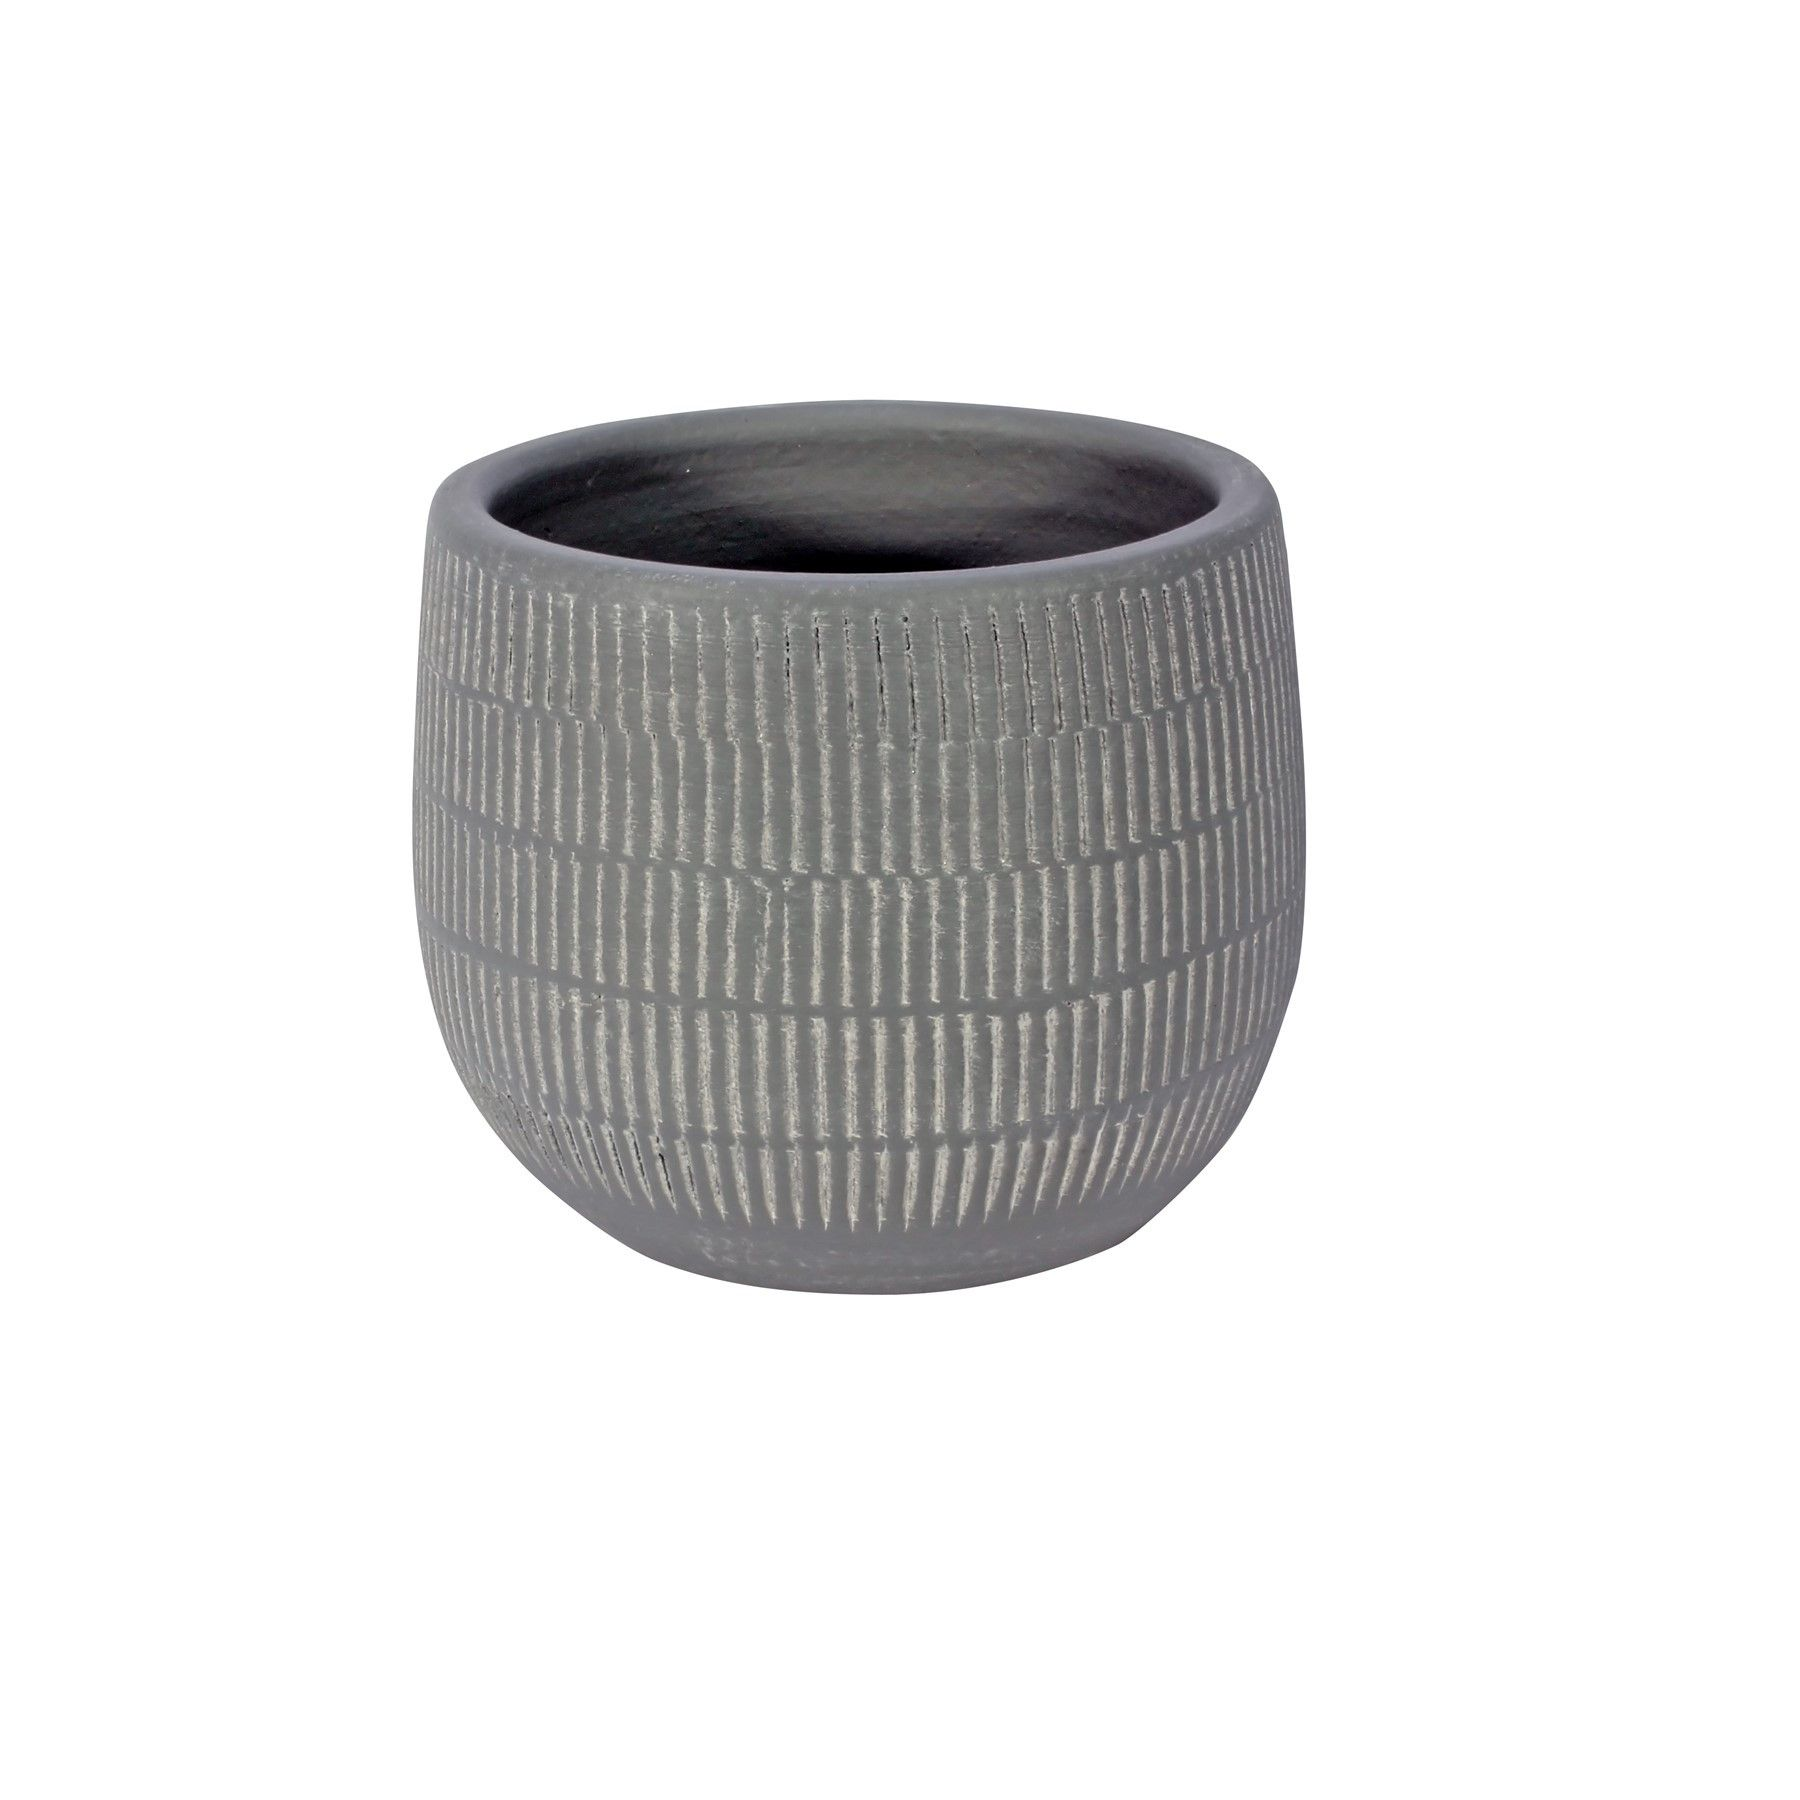 Amalfi Pot Light Grey (12cm x 10cm)